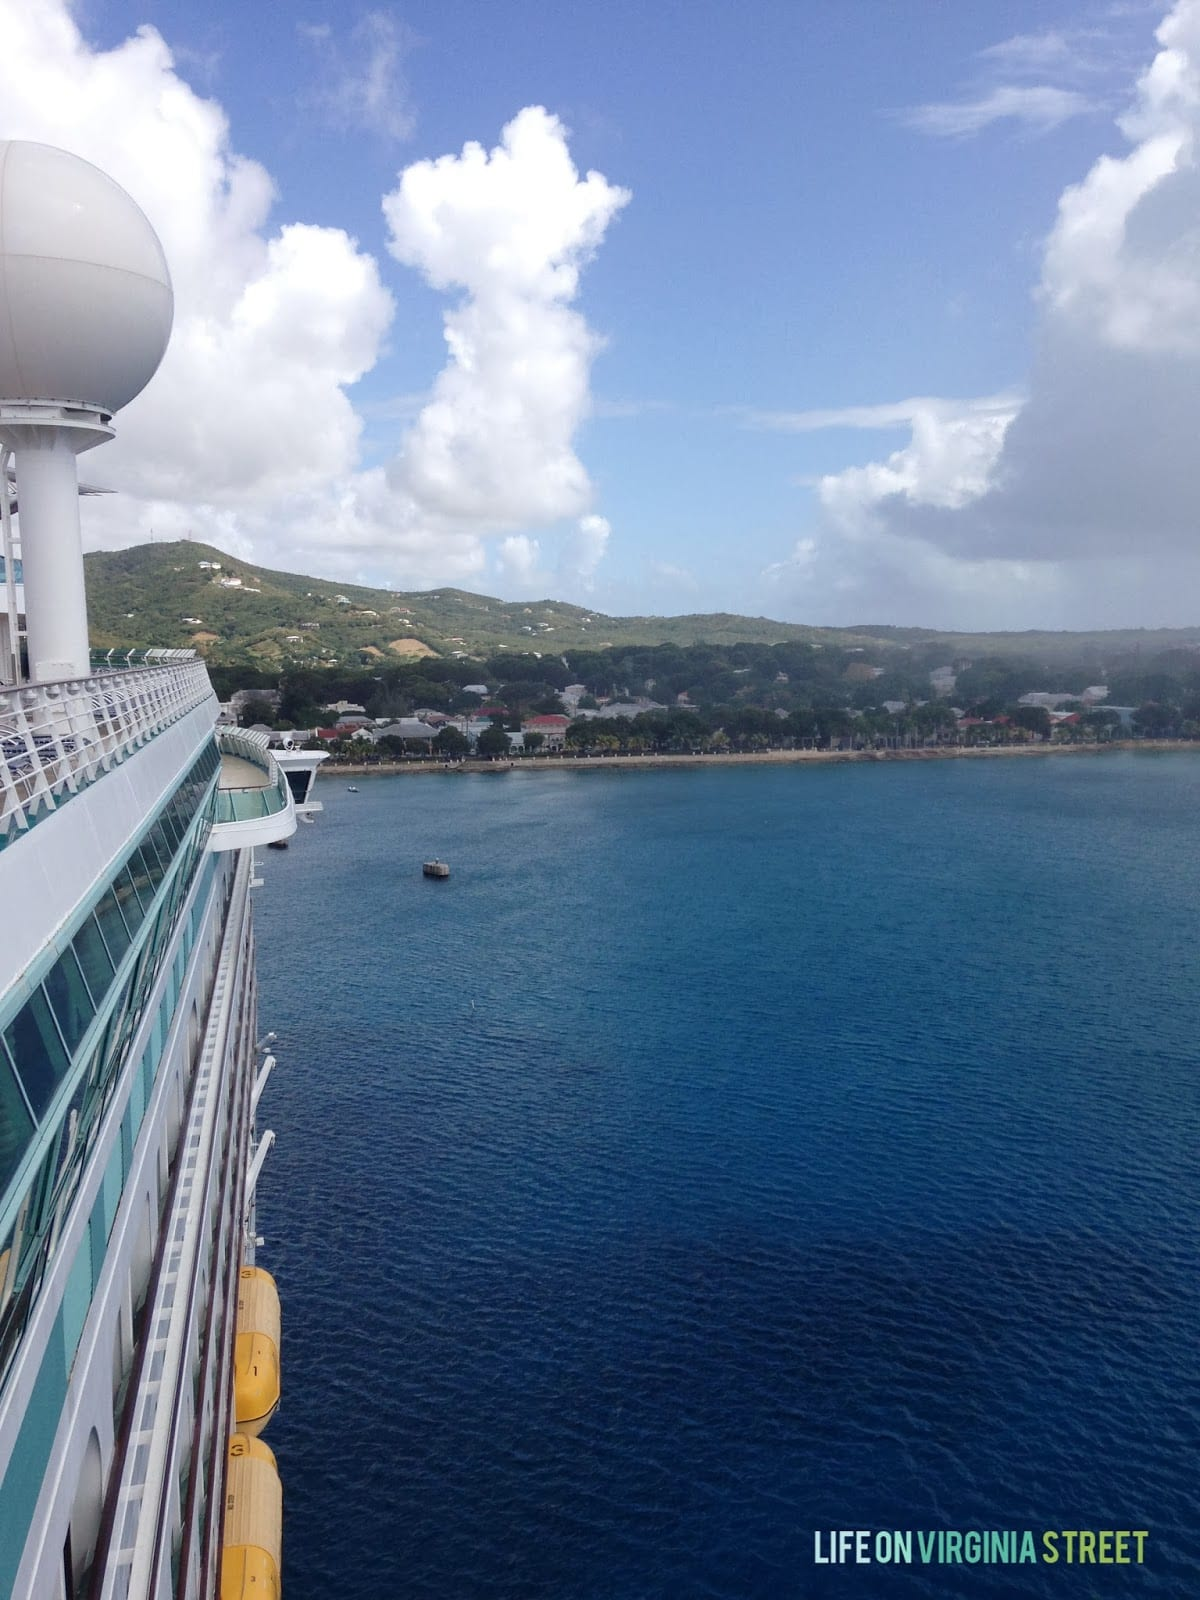 On the cruise ship looking at the shore.